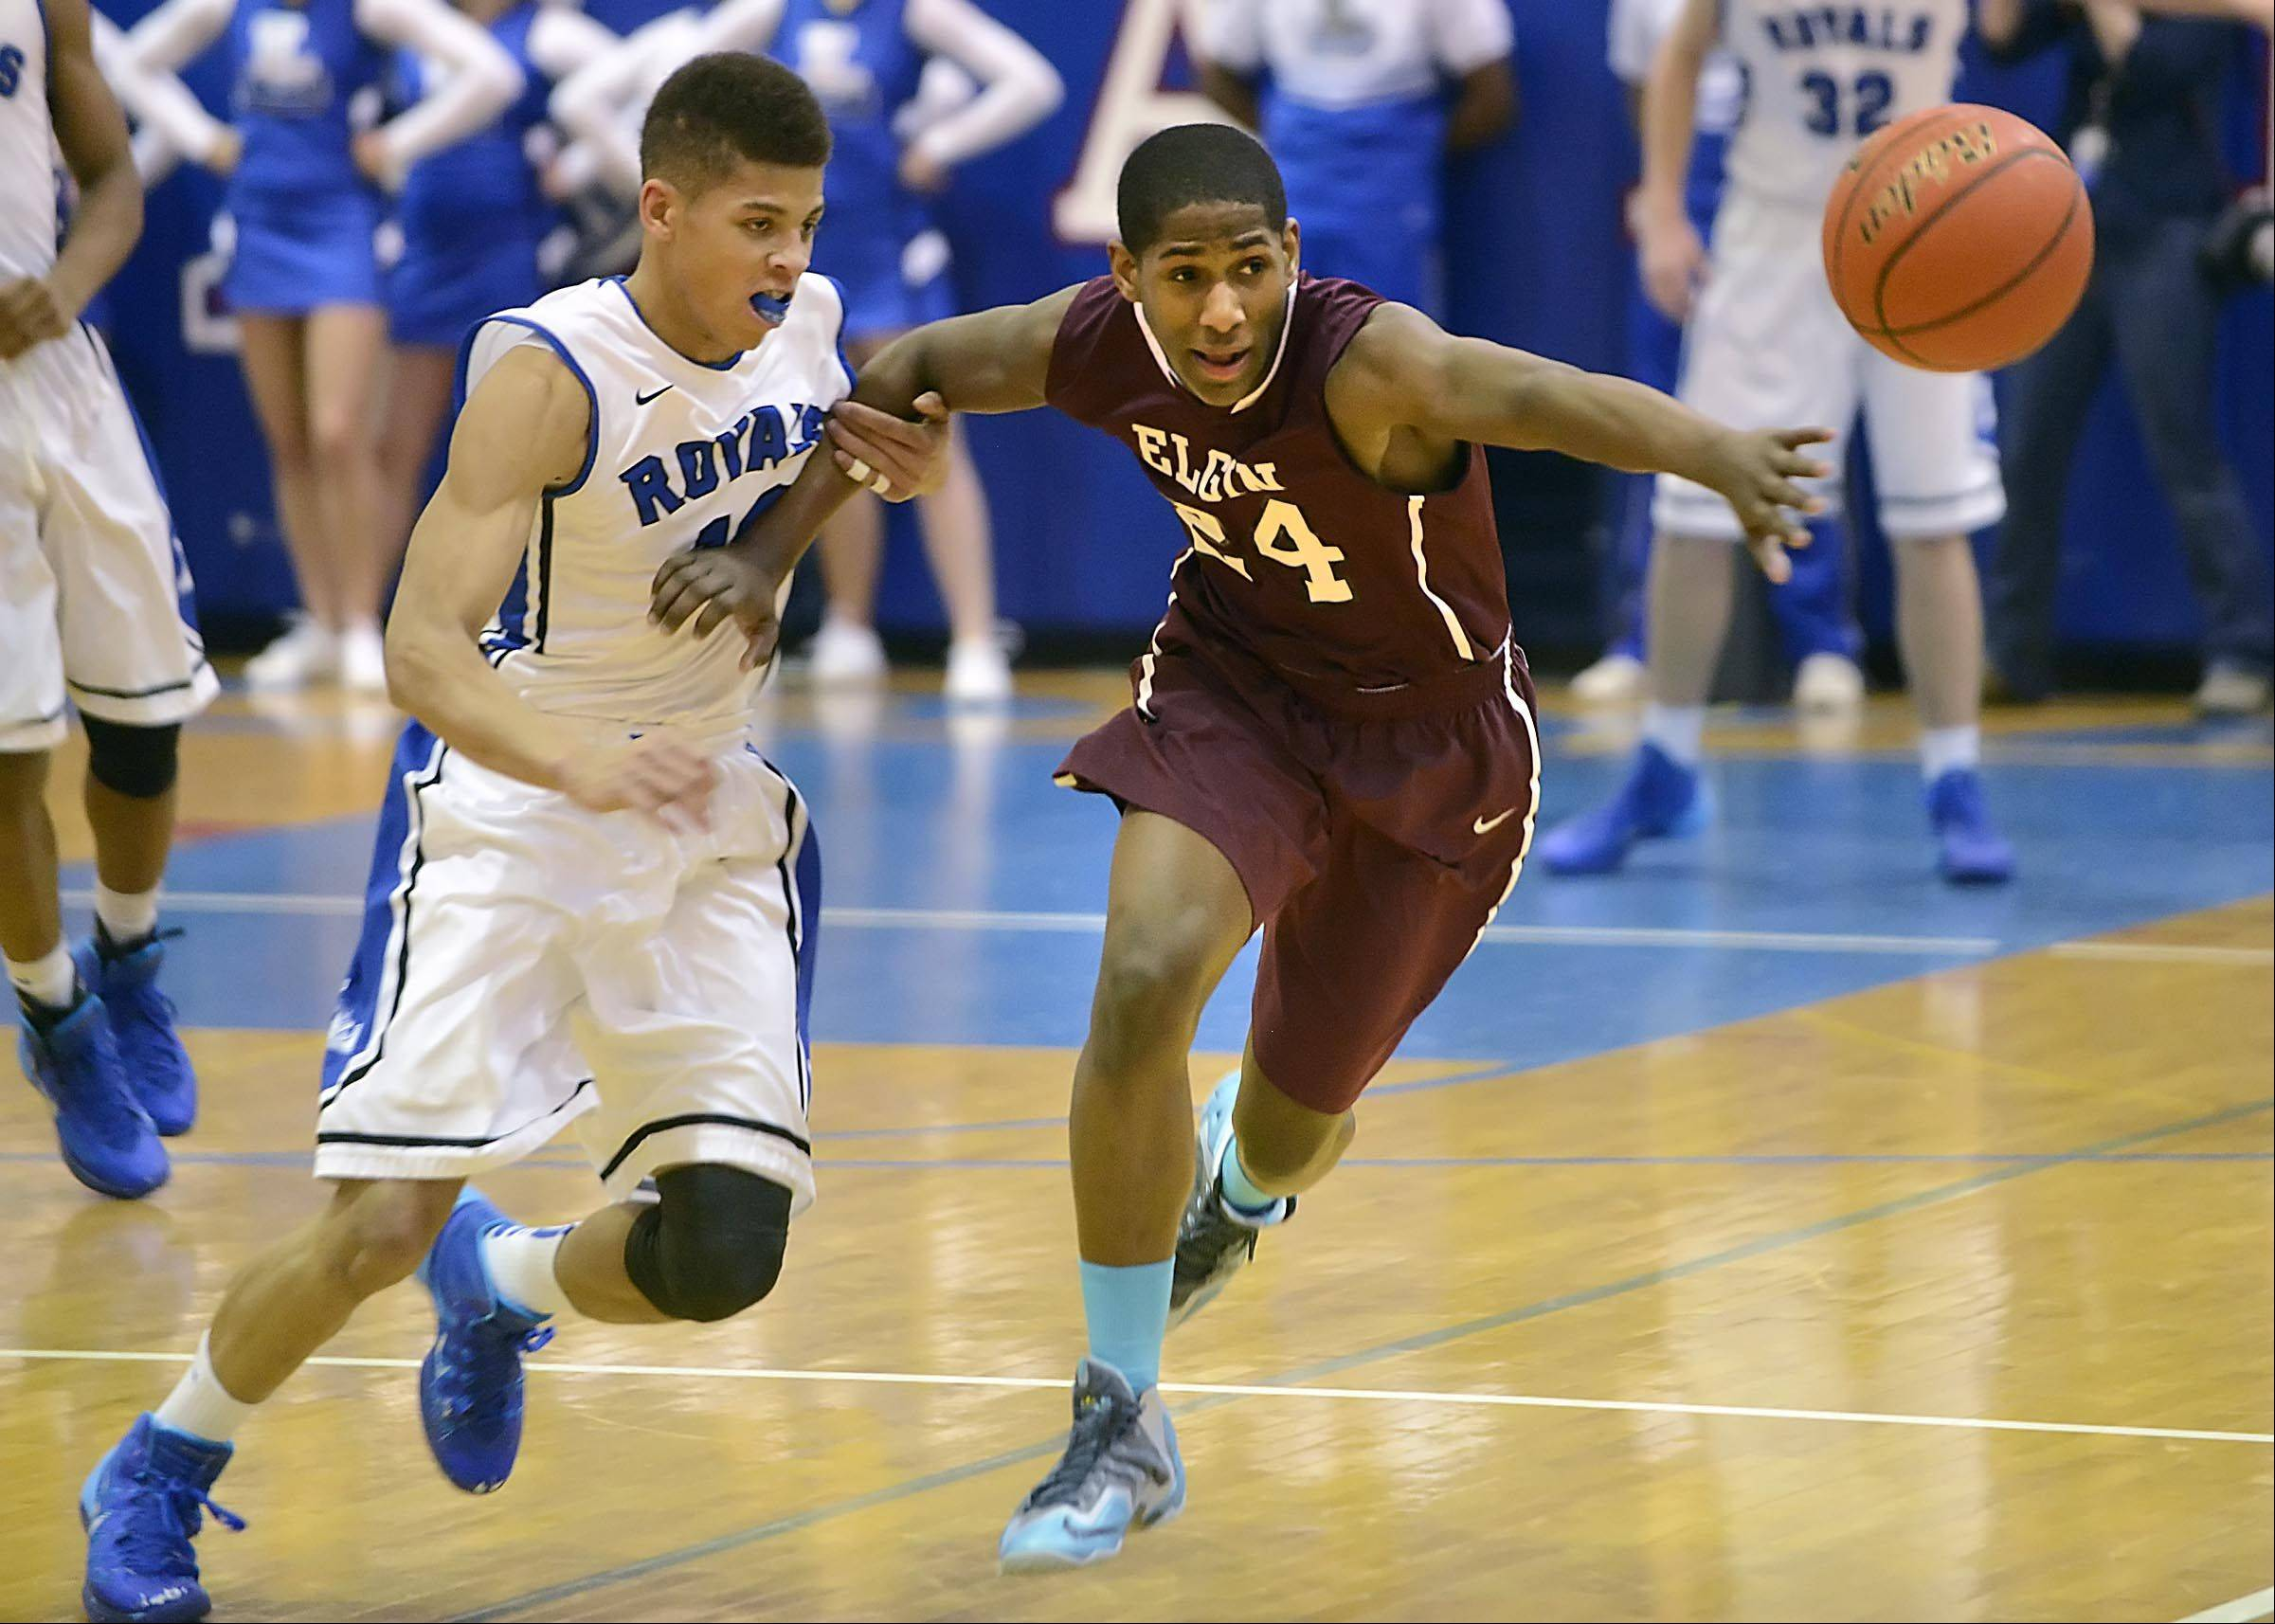 Elgin�s Lavion Baldwin holds off Larkin�s Kendale McCullum as they charge for a loose ball Friday at Larkin.